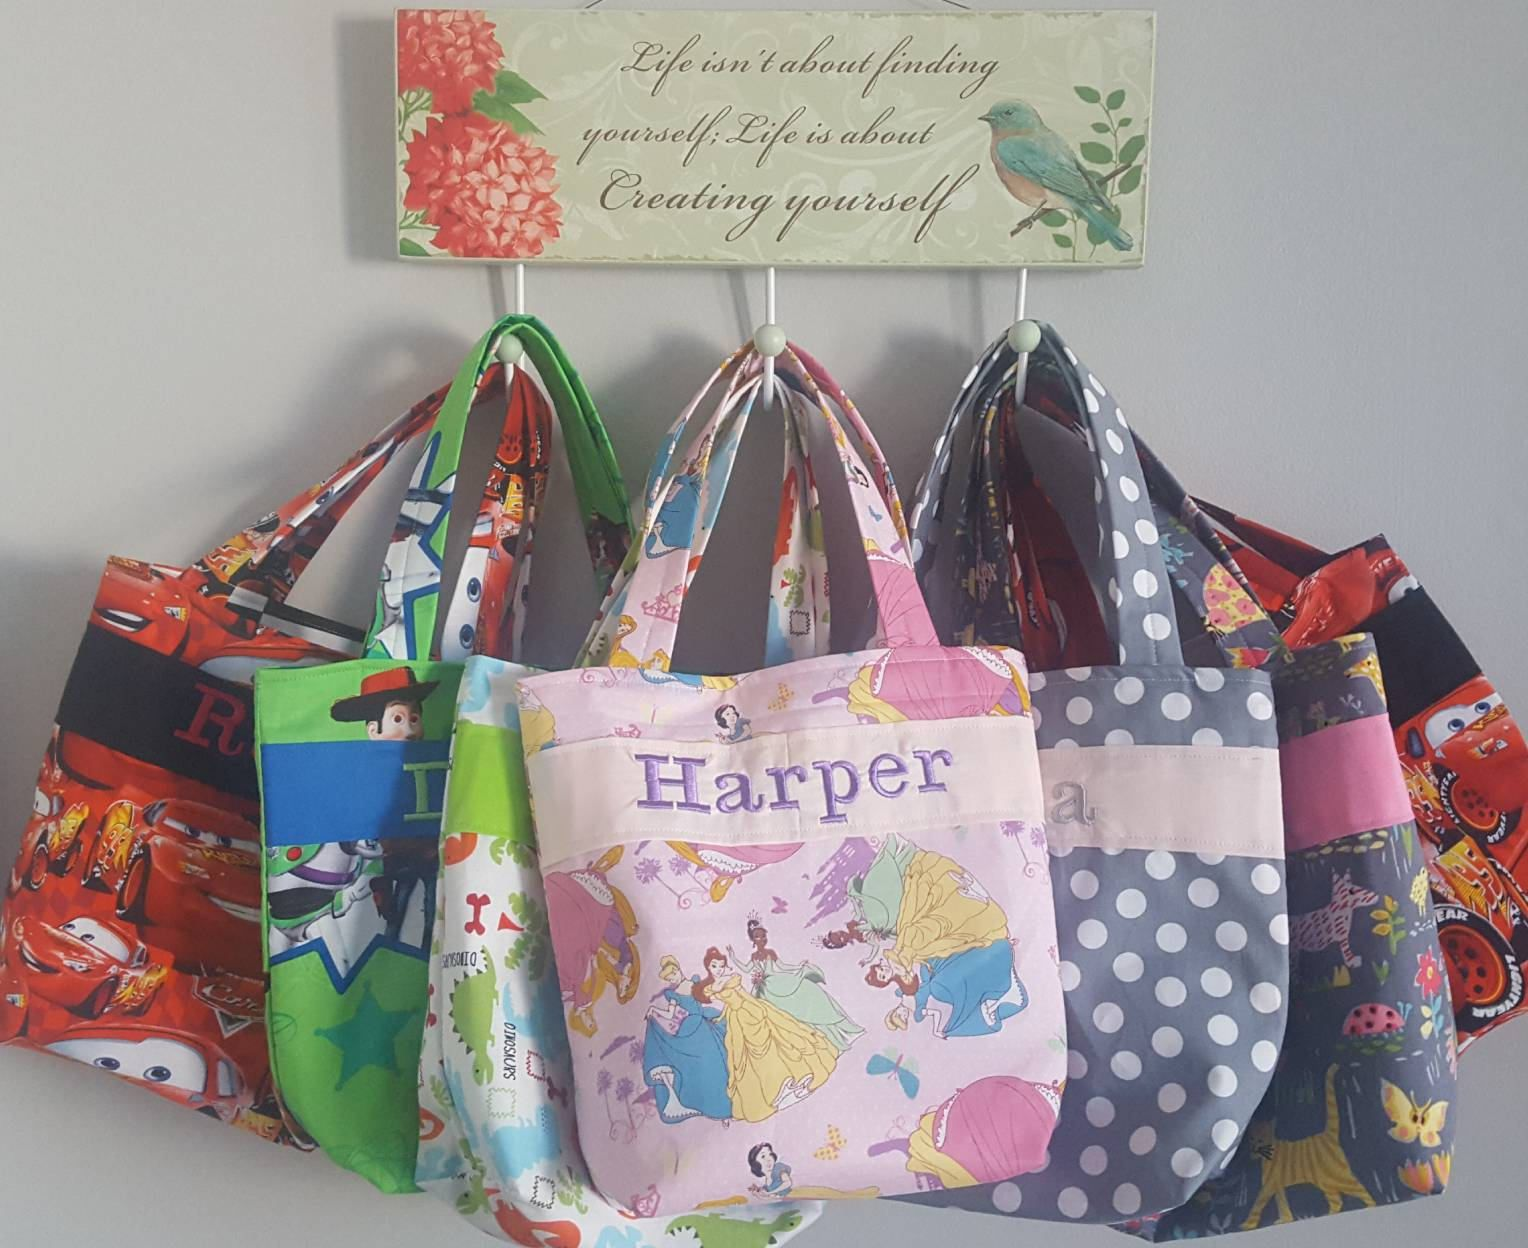 Flower Girl Gift Personalized Tote Bag Quiet Color Crayon Roll Bride Wedding Design Your Own 100s Fabric Choices Alphabet